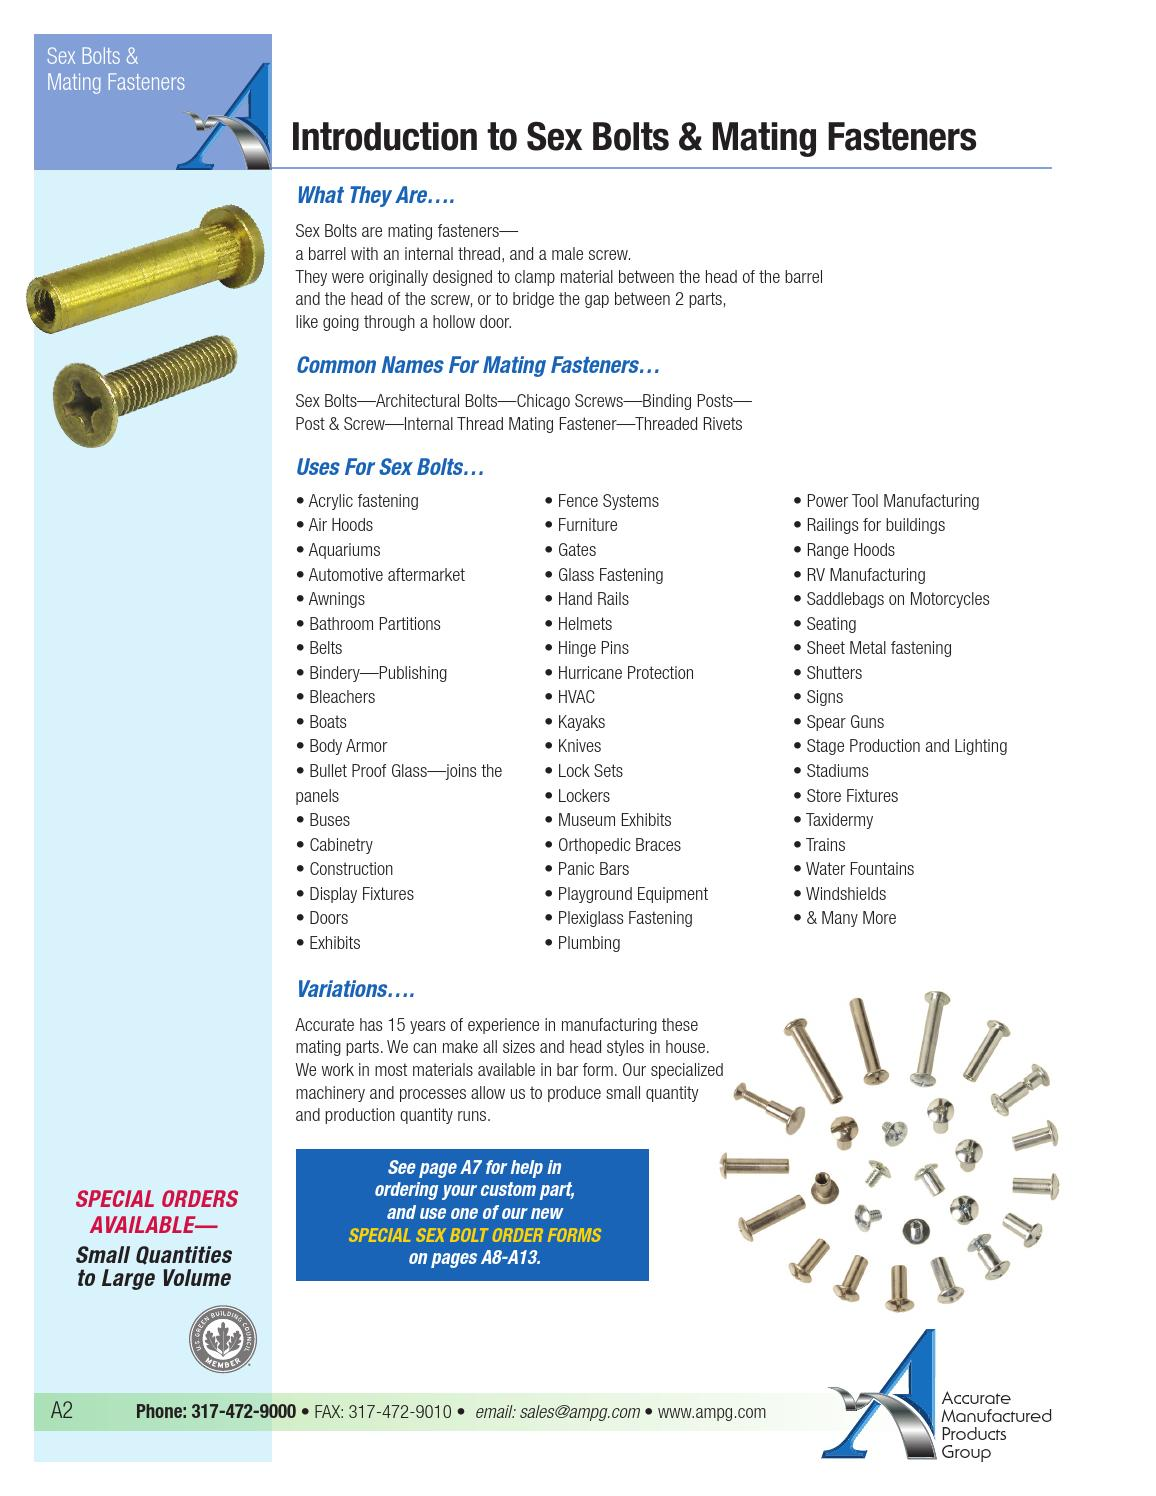 2014 AMPG Mating Fasteners Catalog by AMPG - issuu